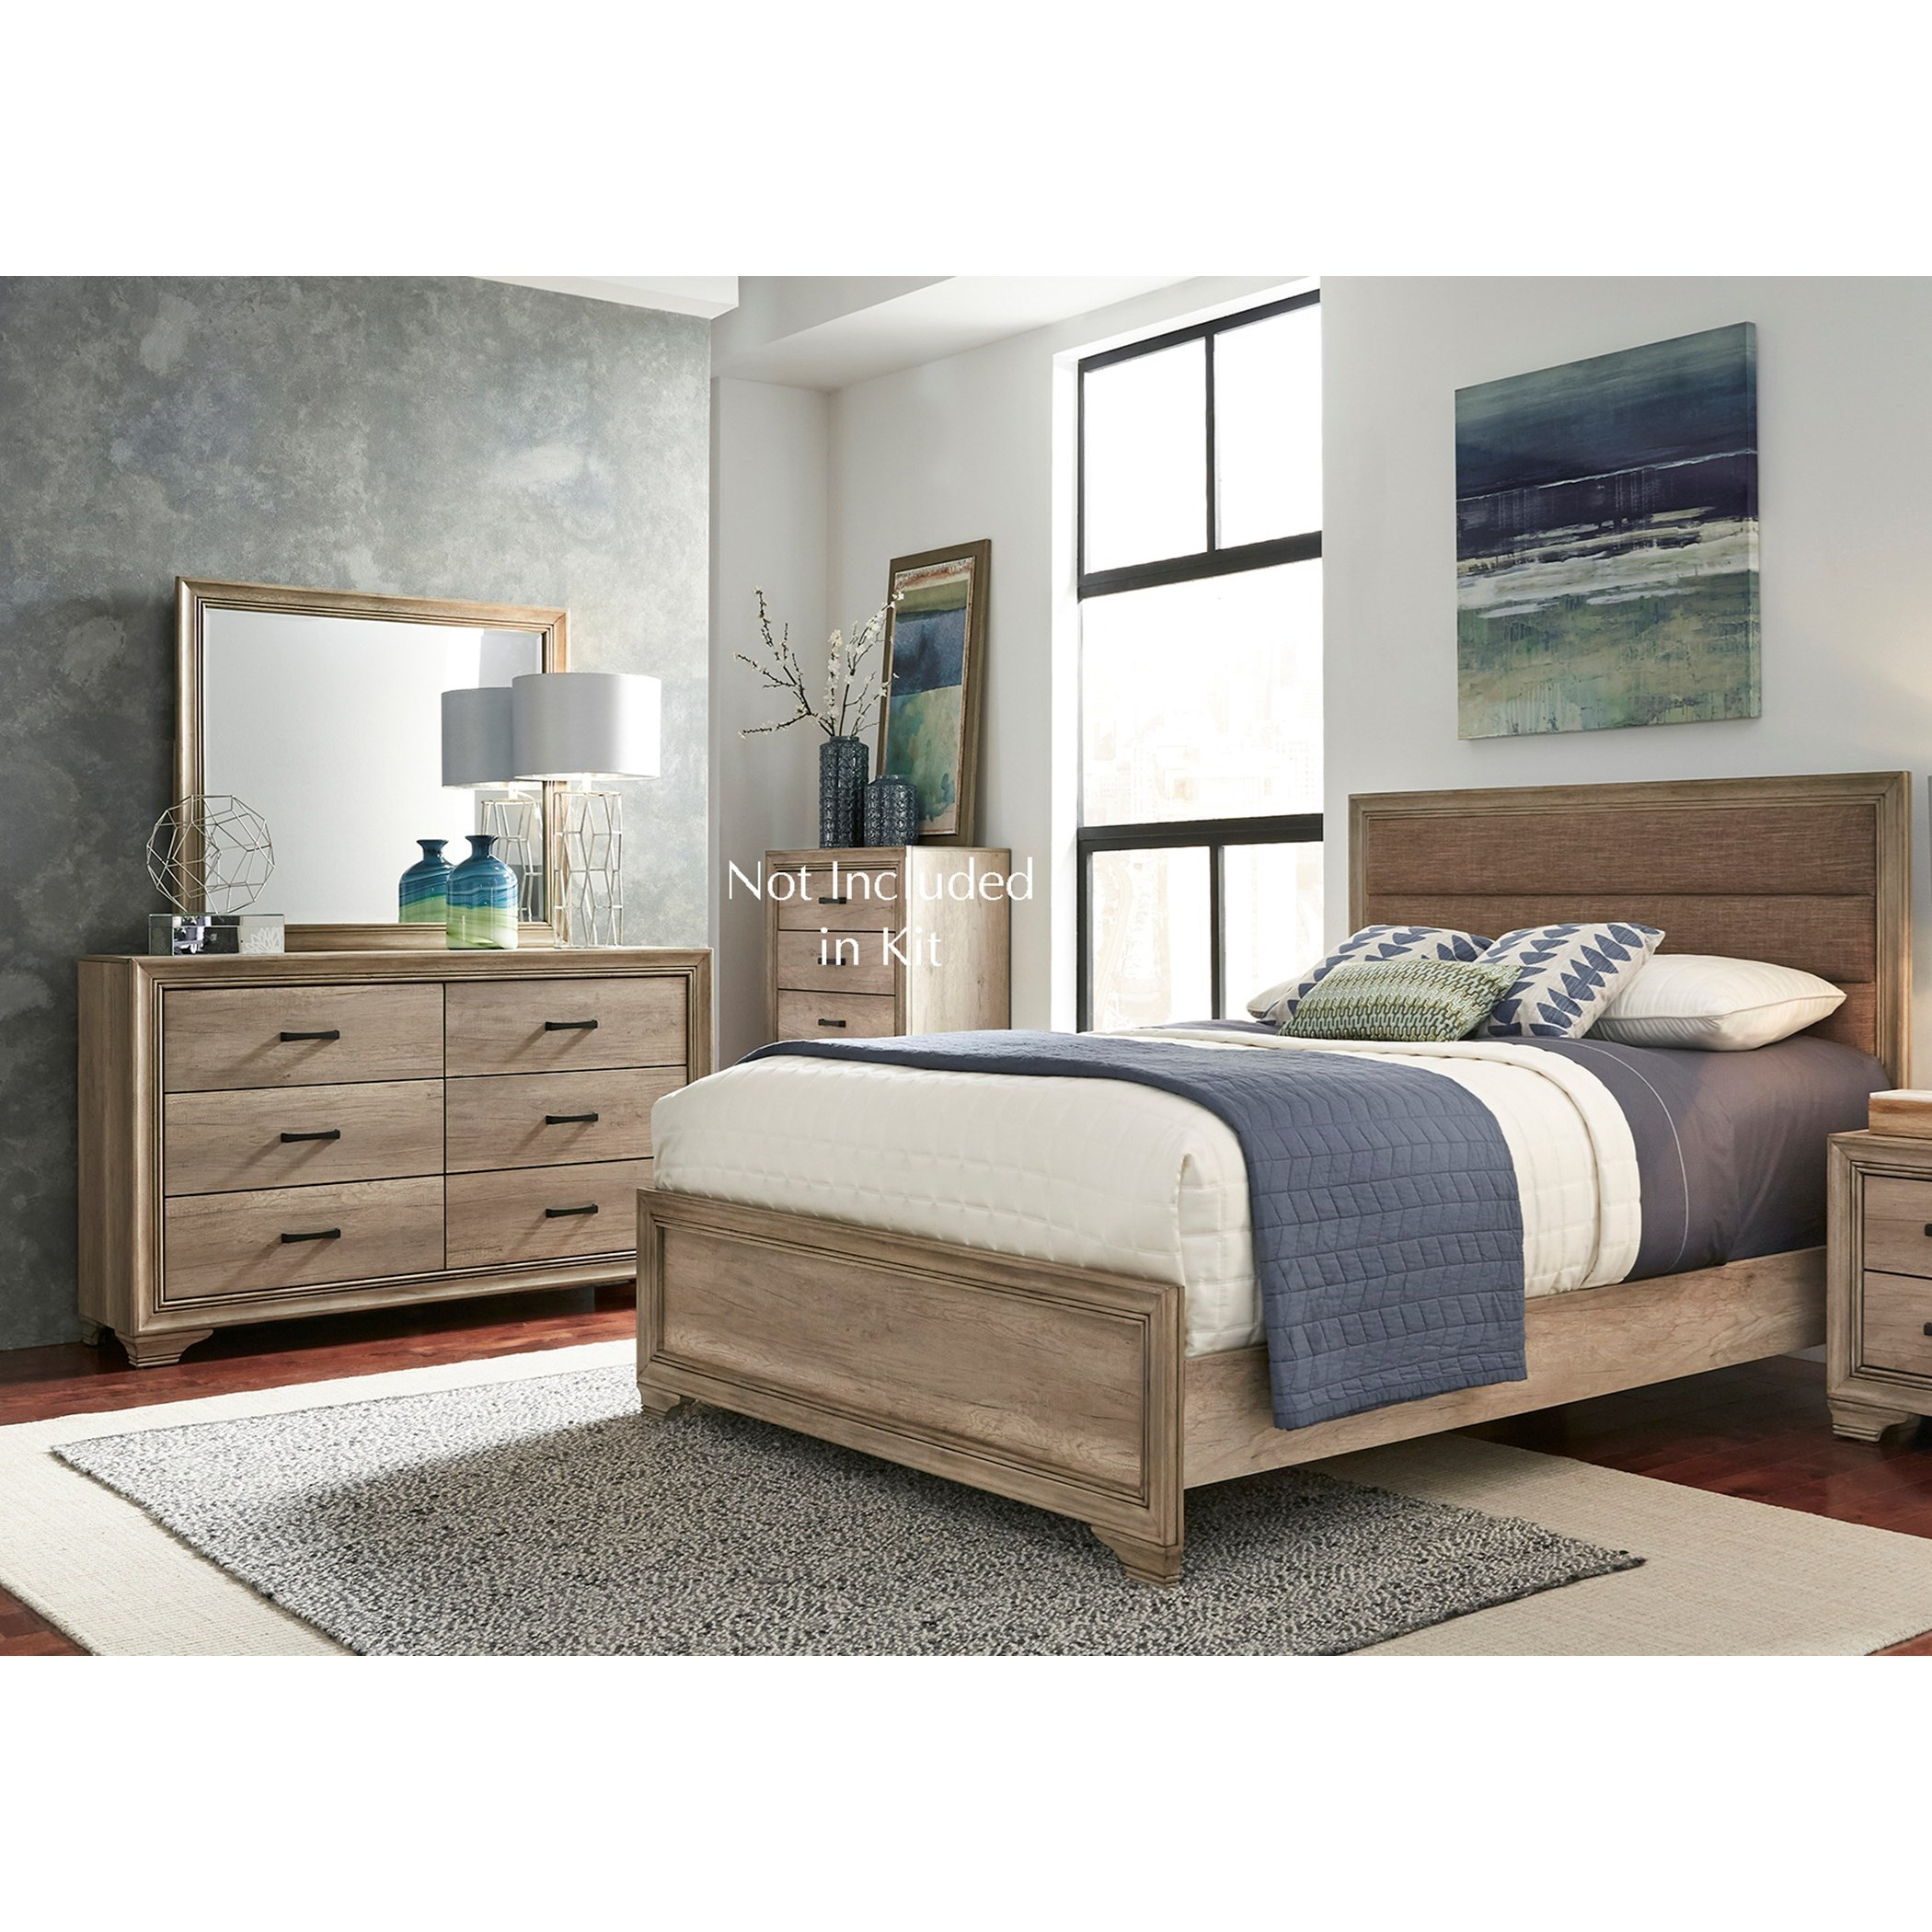 Liberty Furniture Sun Valley 439 Twin Uph Bed, Dresser & Mirror  - Item Number: 439-BR-TUBDM